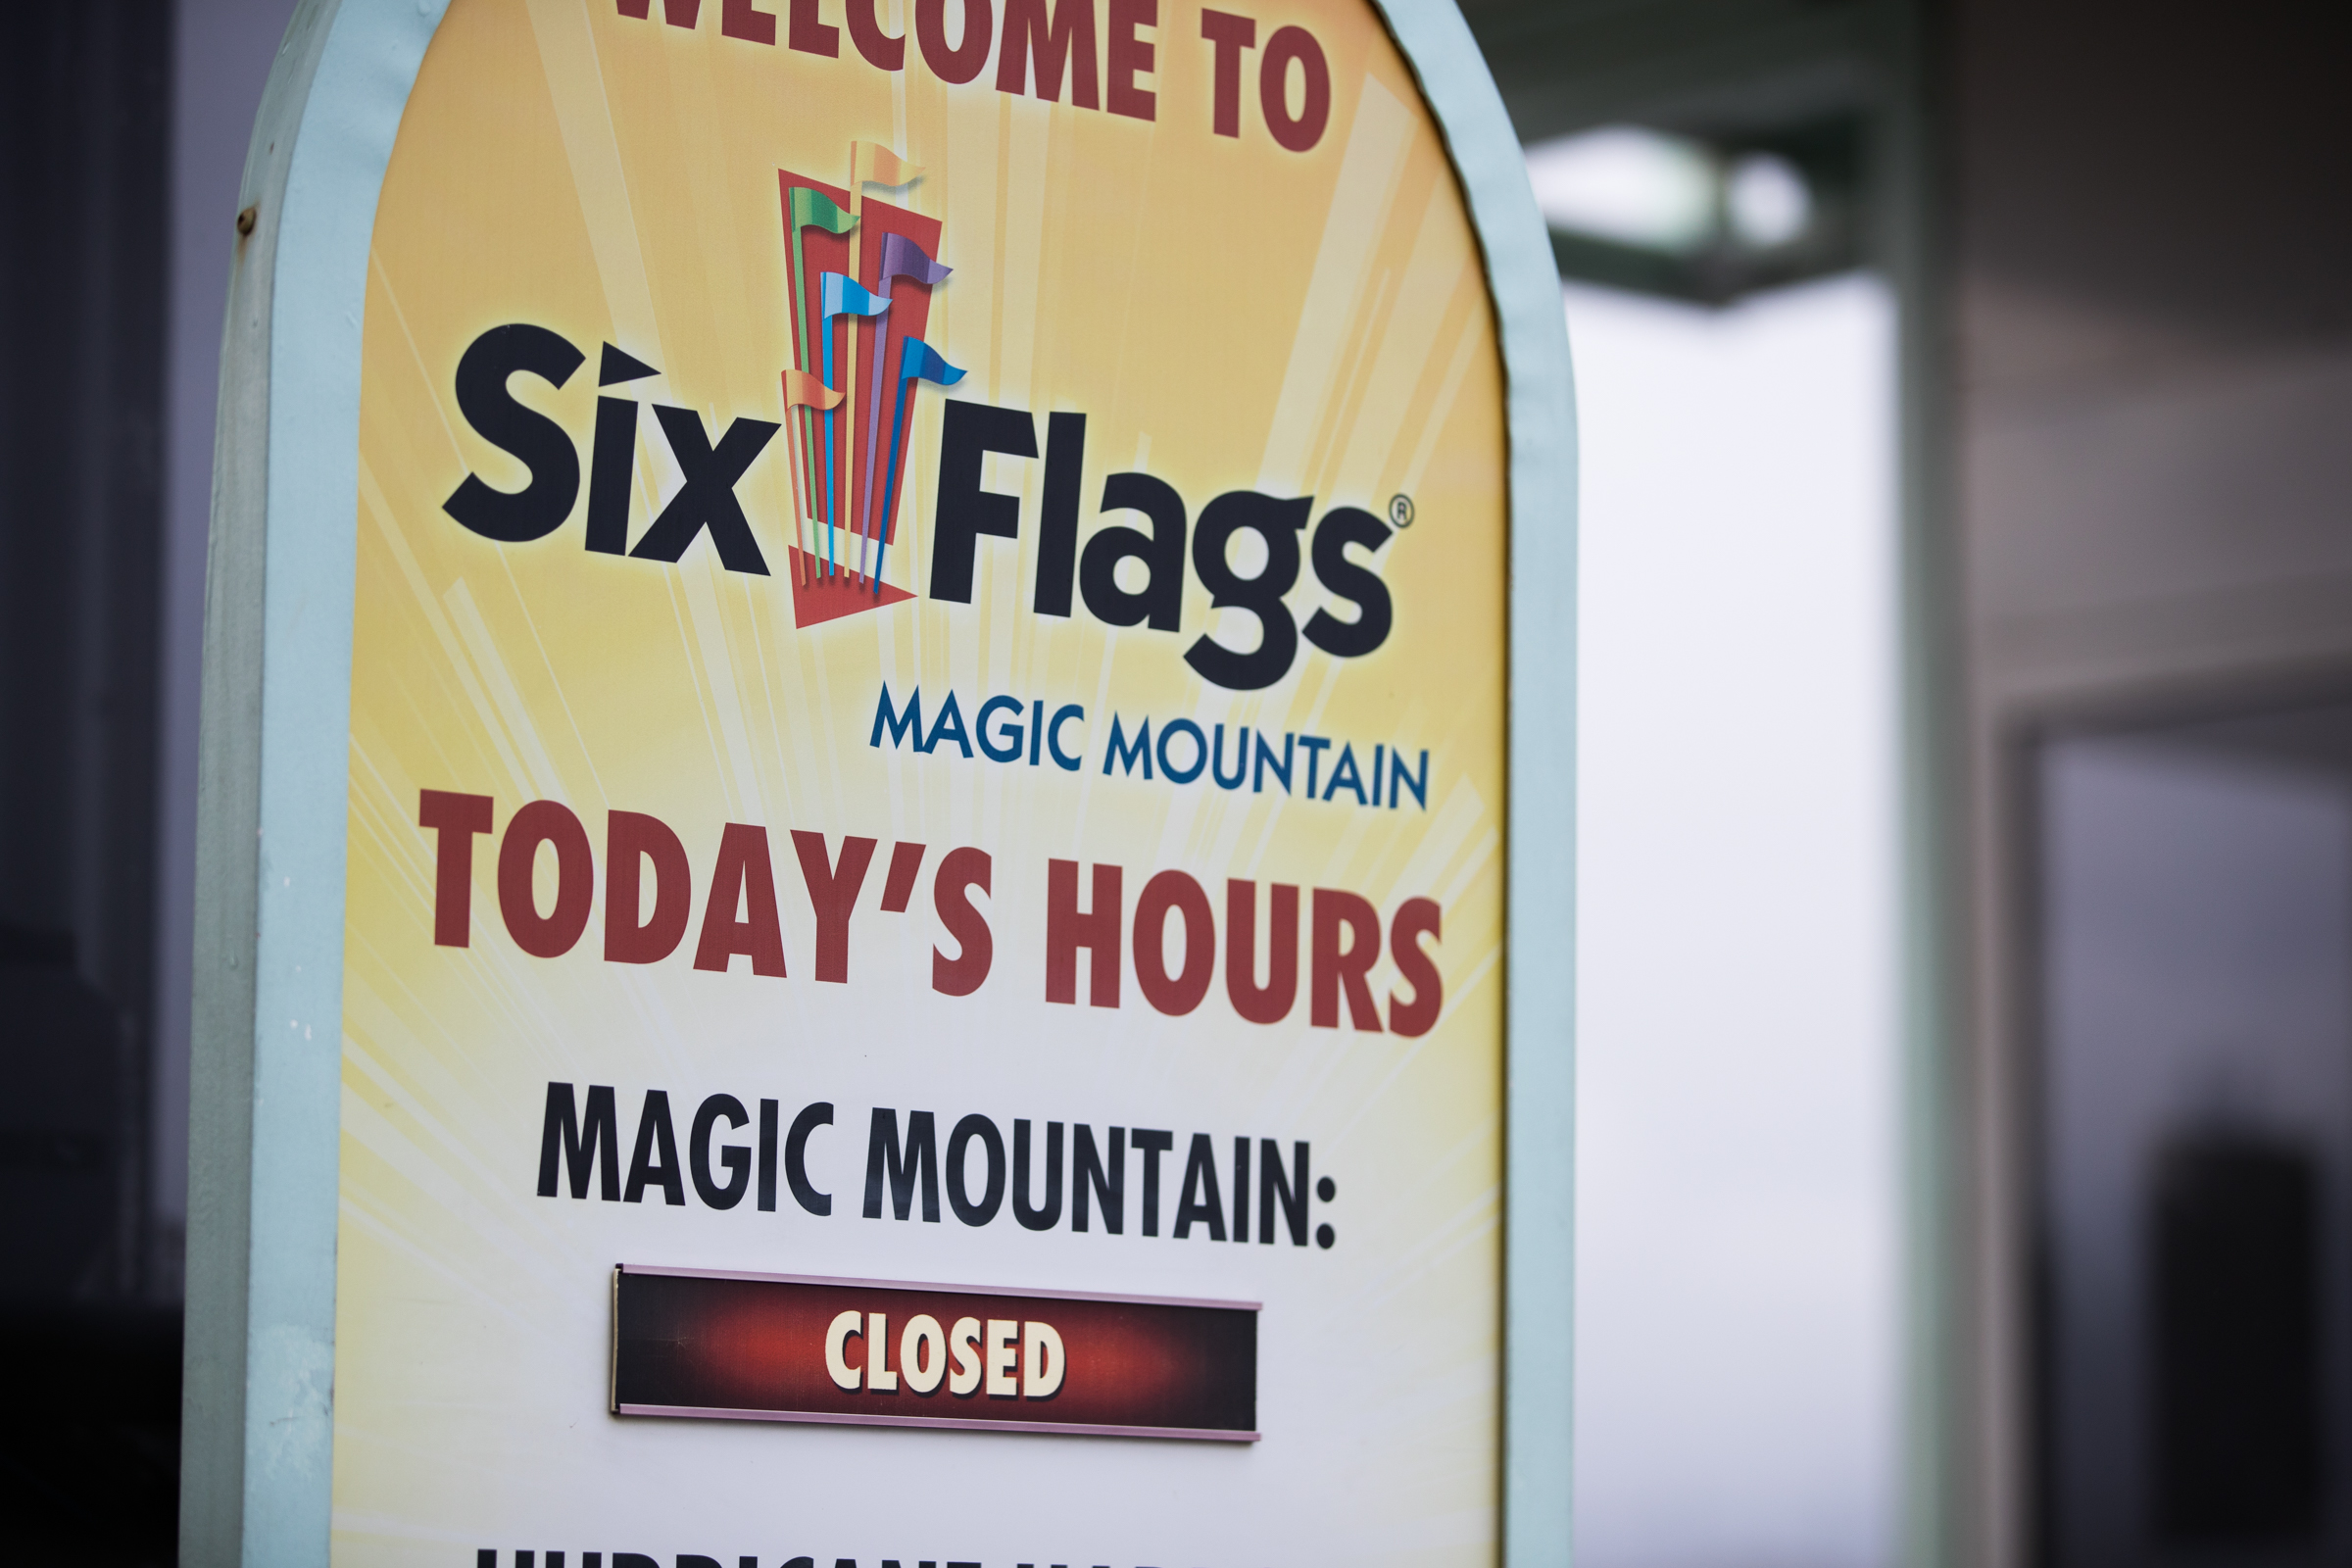 Six Flags Nationwide Plan Reopening For Summer, Thousands of Seasonal Staff to Be Hired